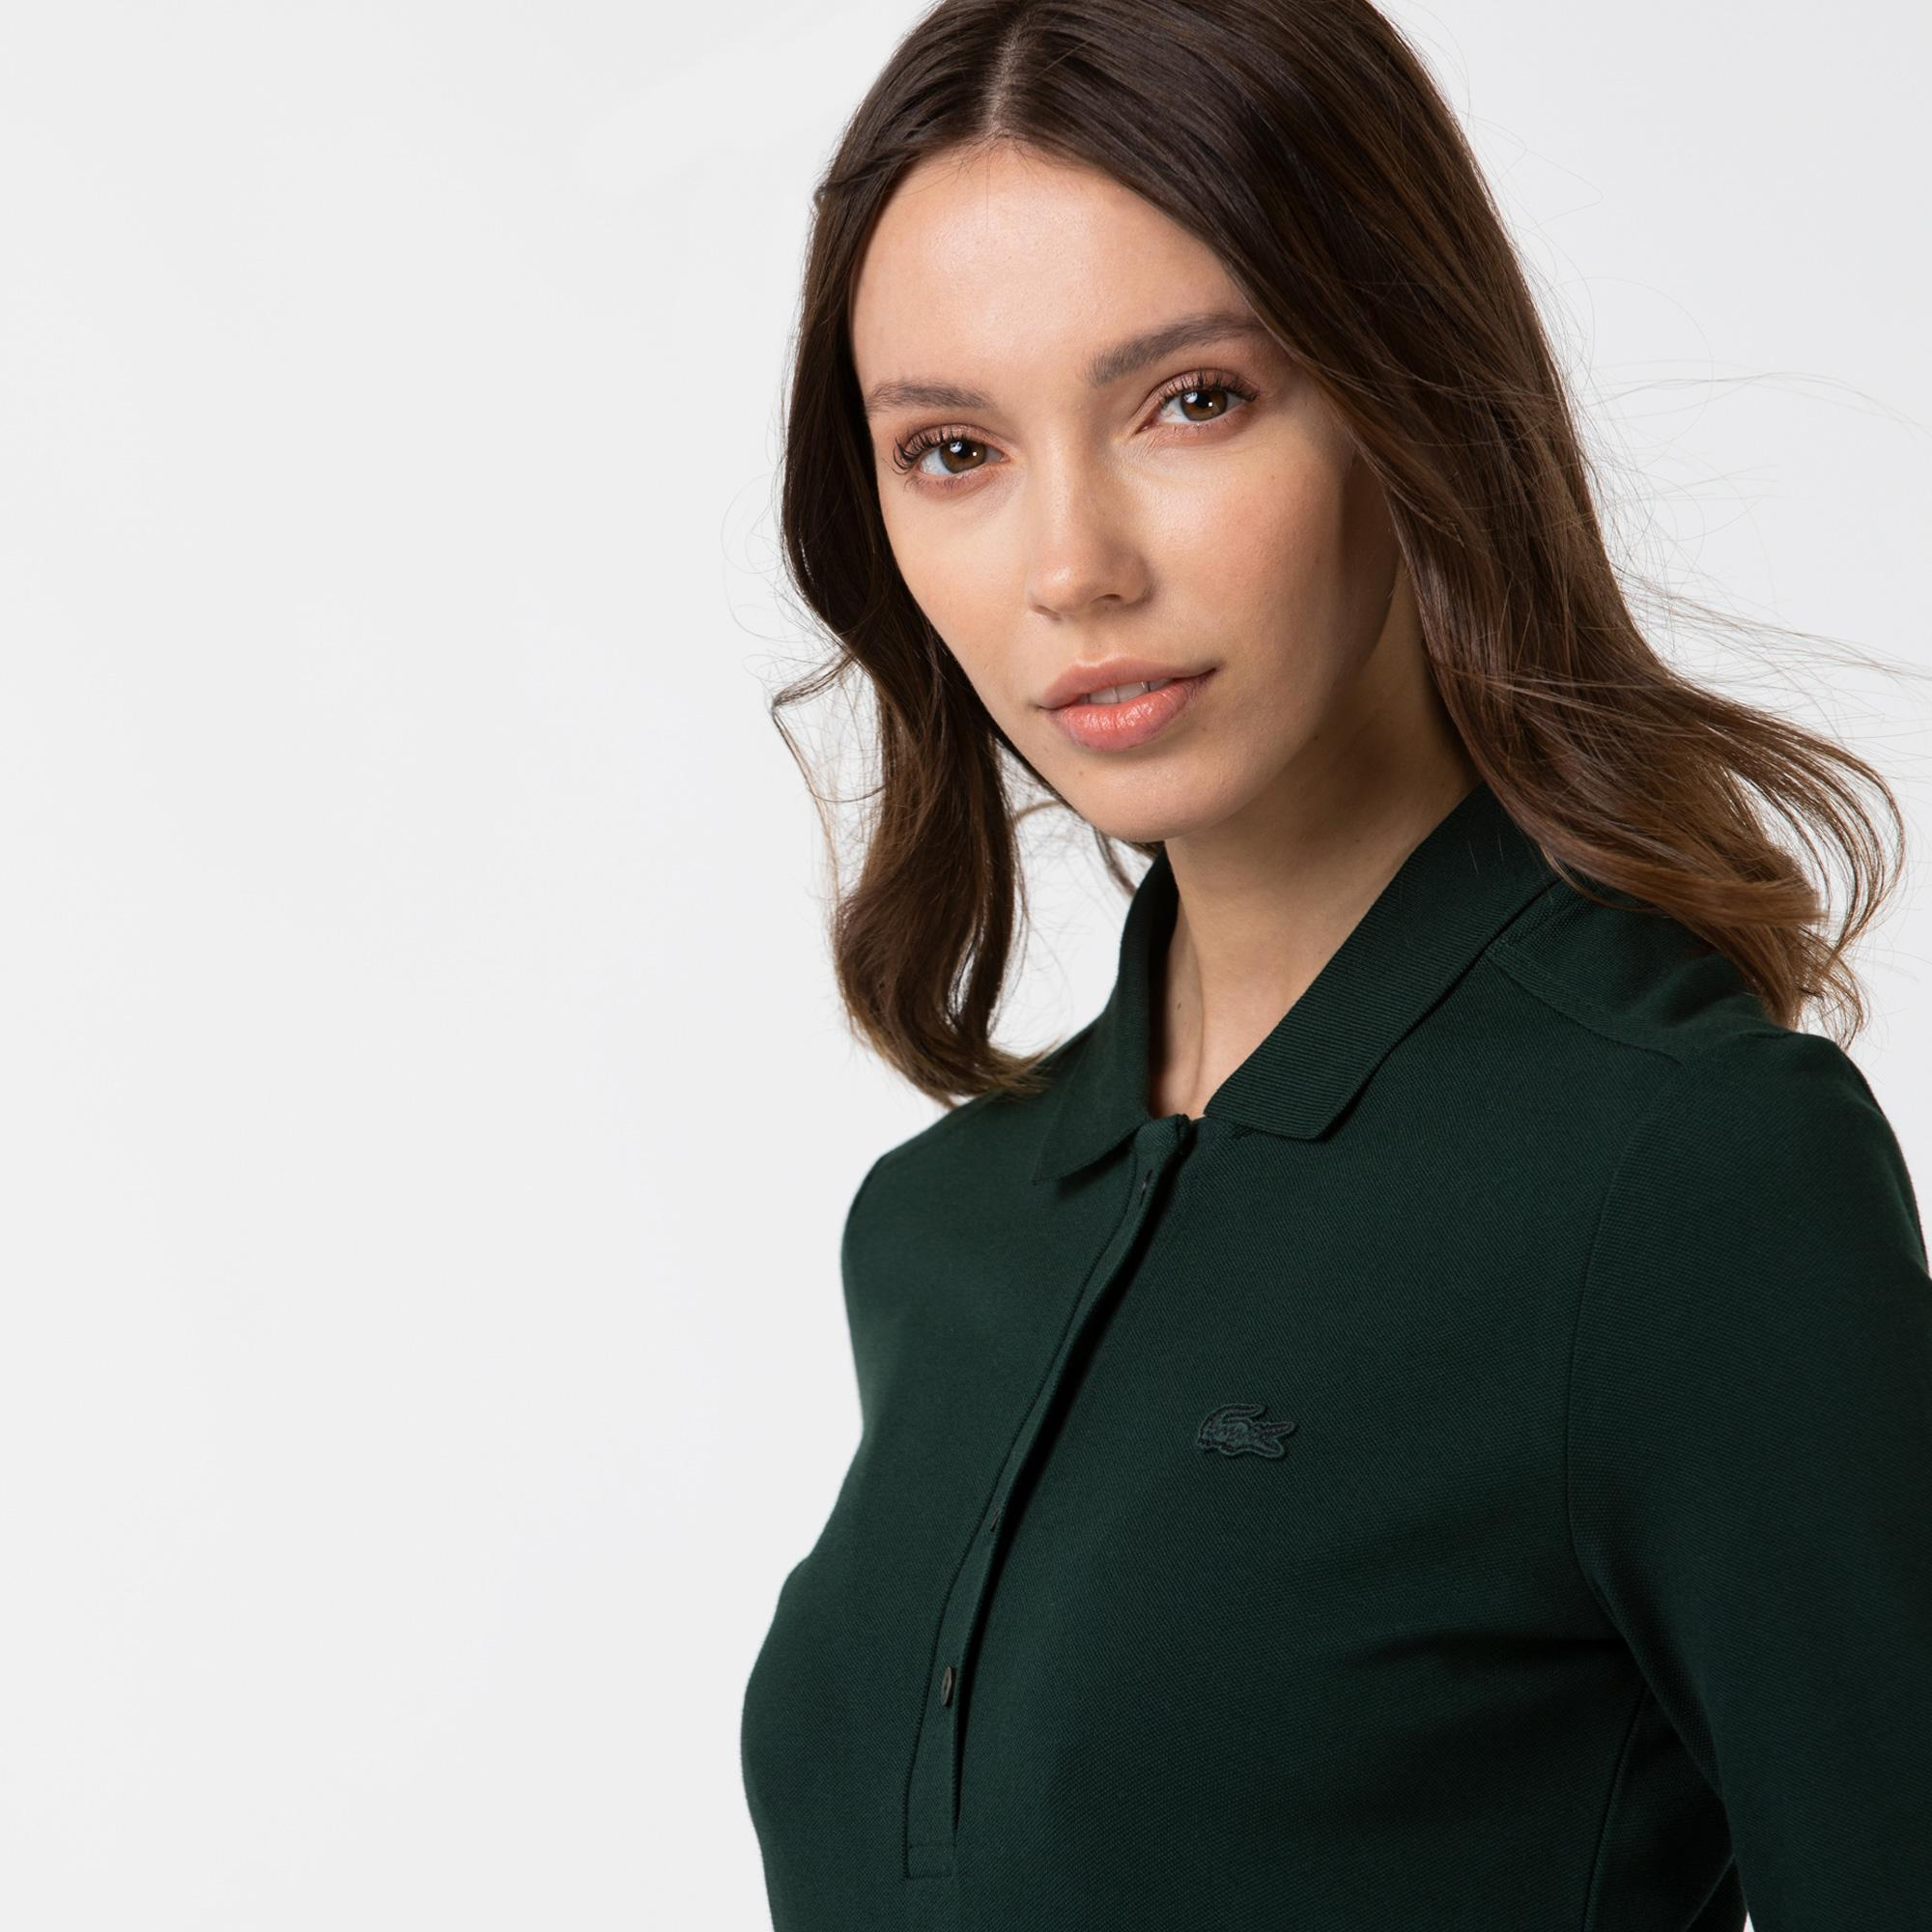 Lacoste Women's Slim Stretch Piqué Lacoste Polo Shirt